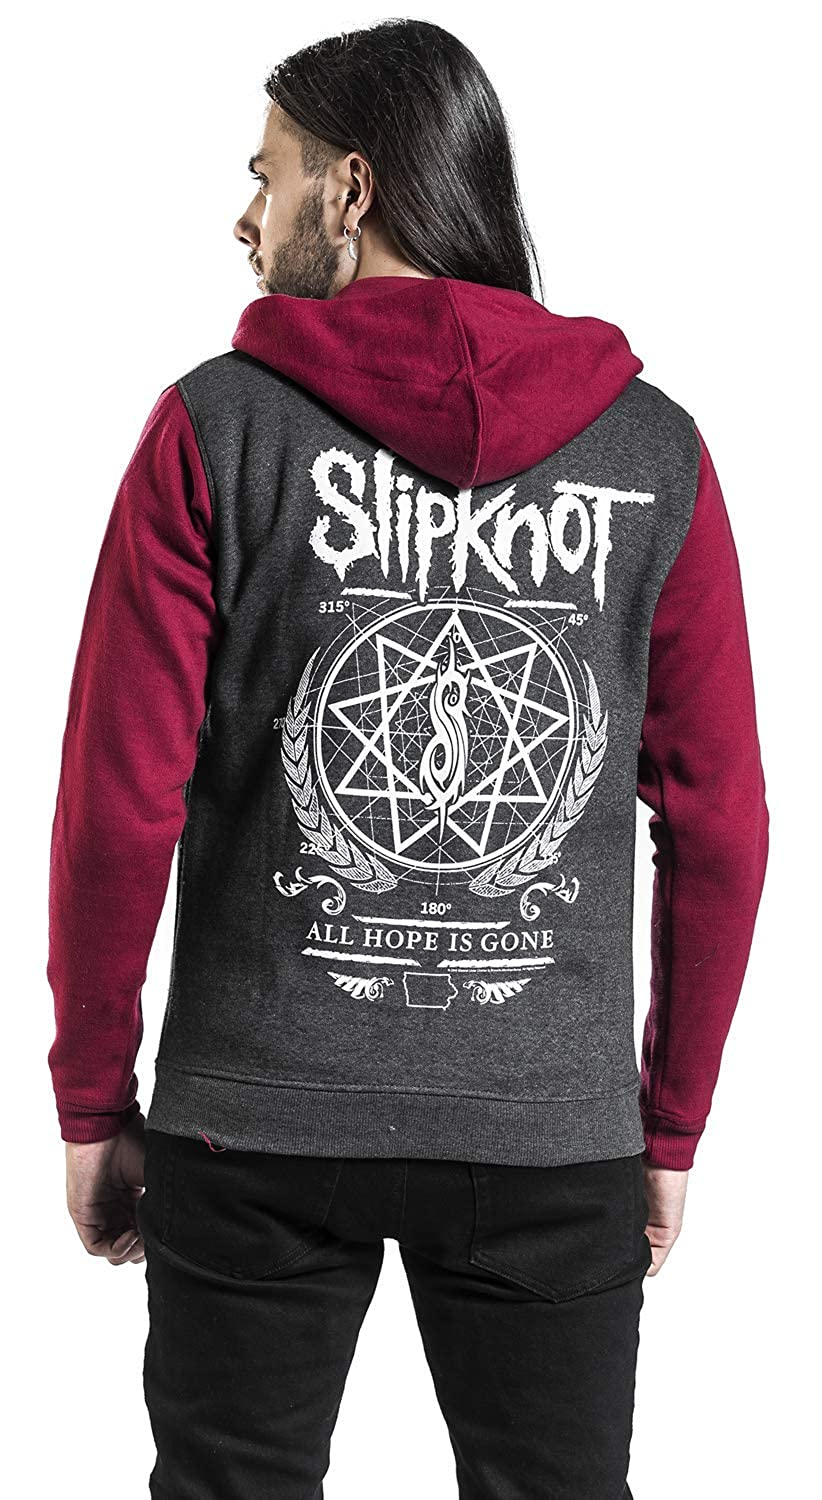 Slipknot Blurry Sweat-Shirt zipp/é /à Capuche Rouge//Gris L